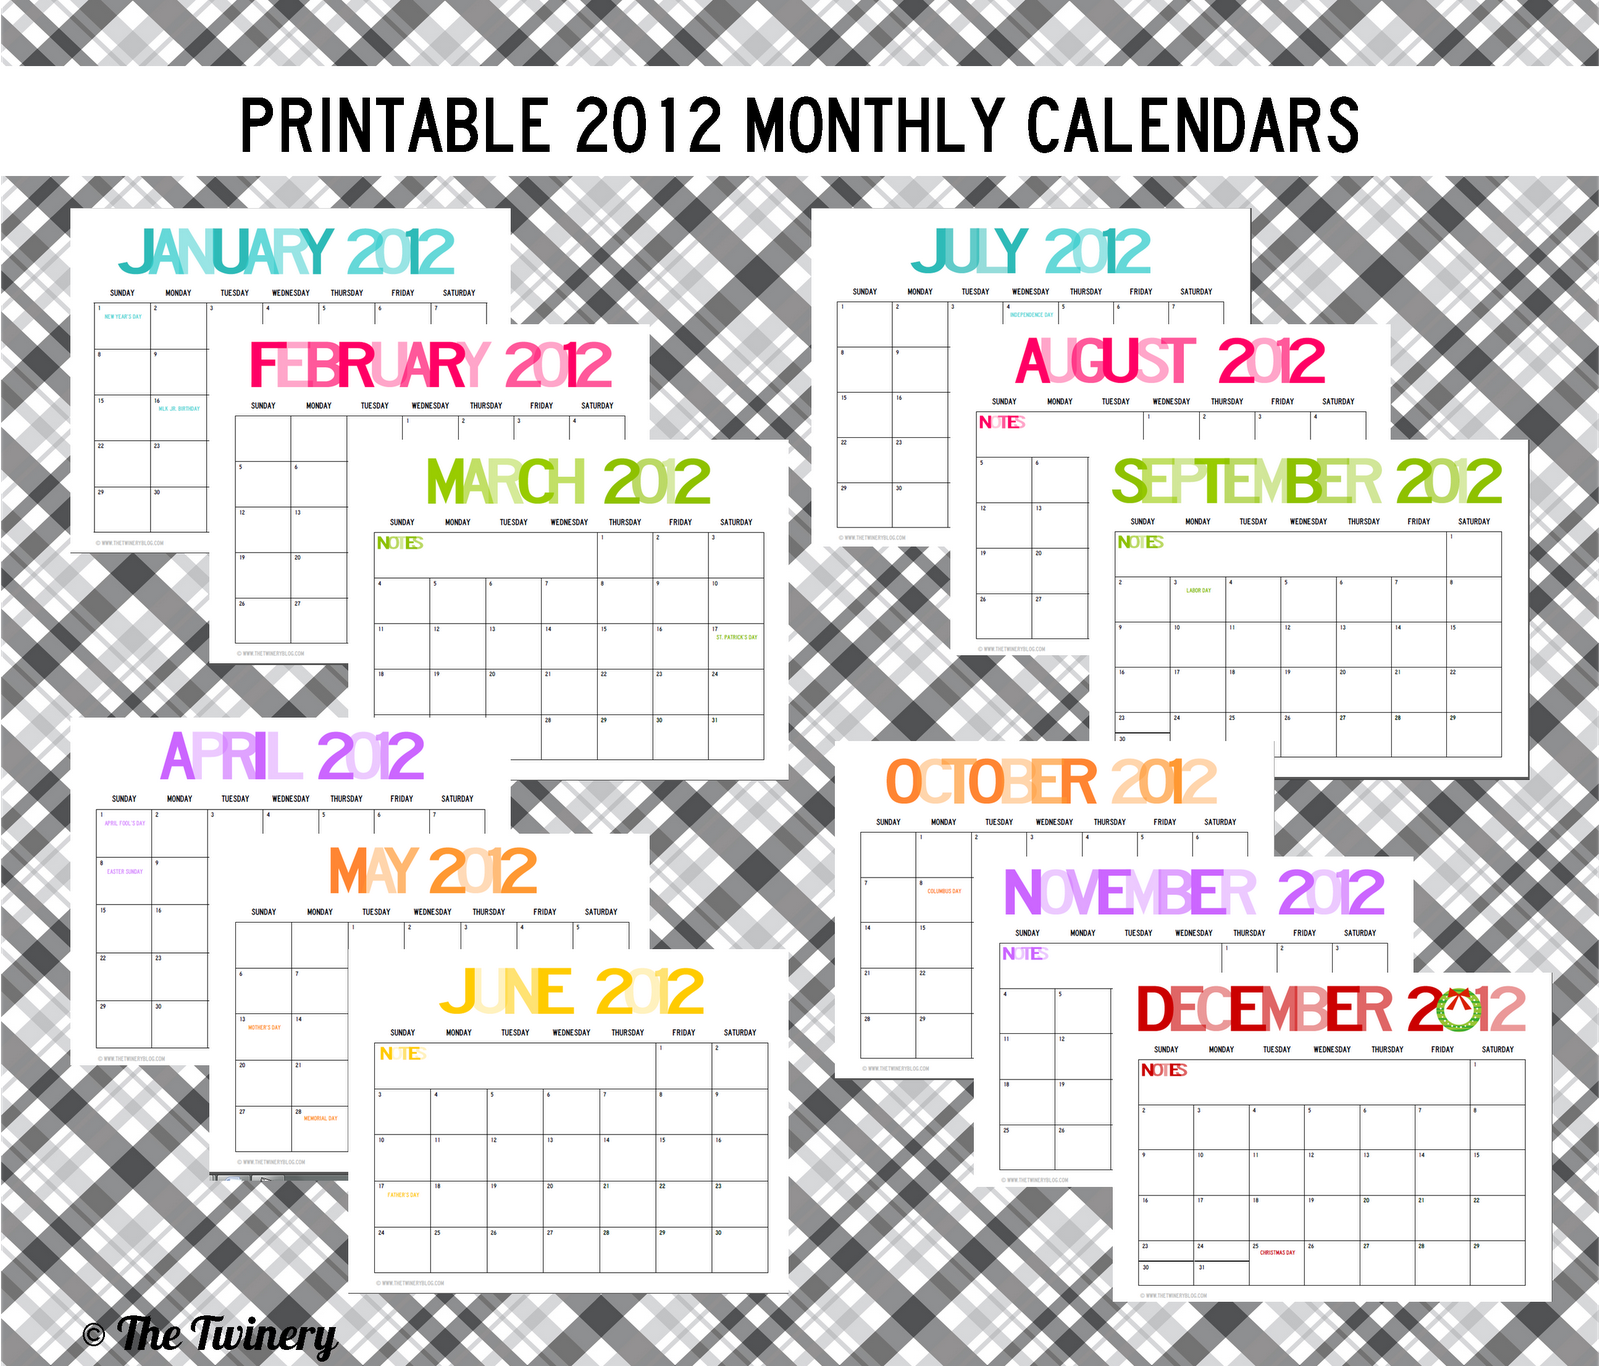 2012 Monthly Printable Calendar Teaching Pinterest Printable